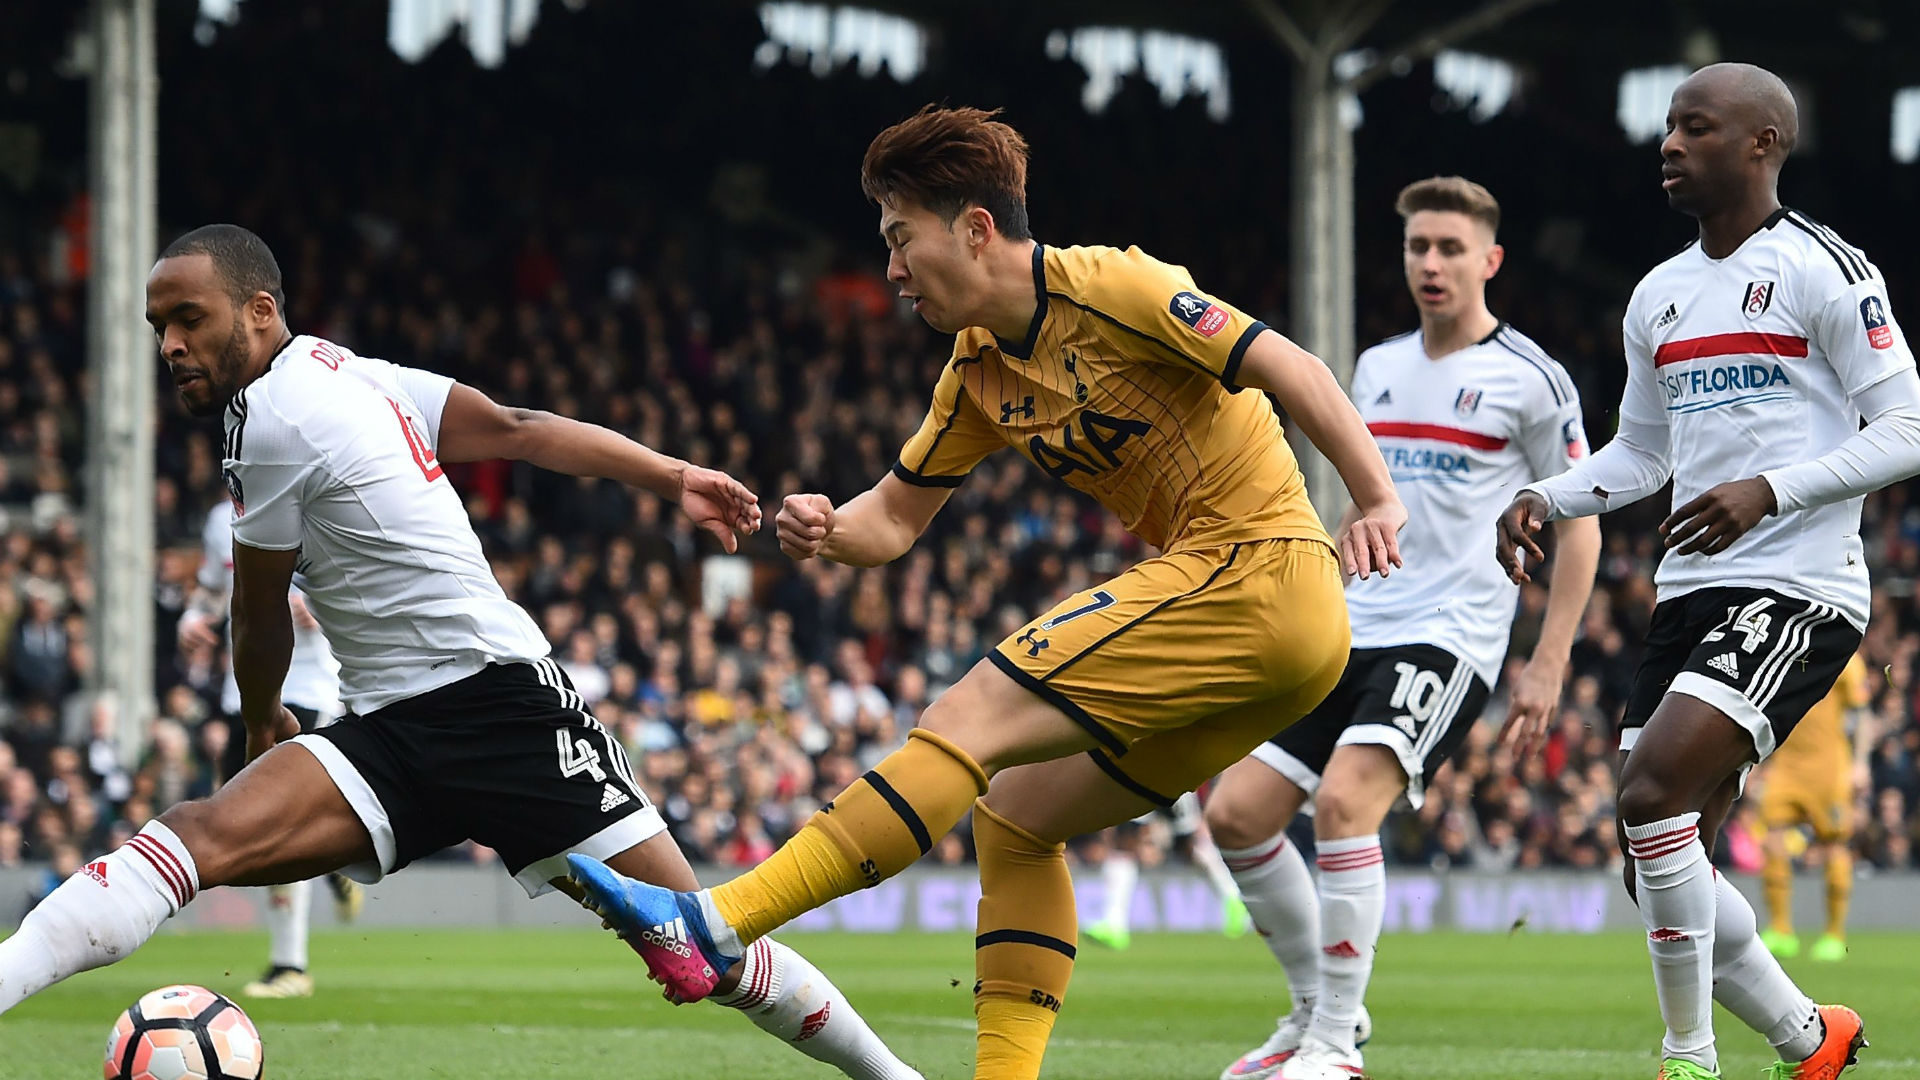 fulham vs tottenham - photo #48